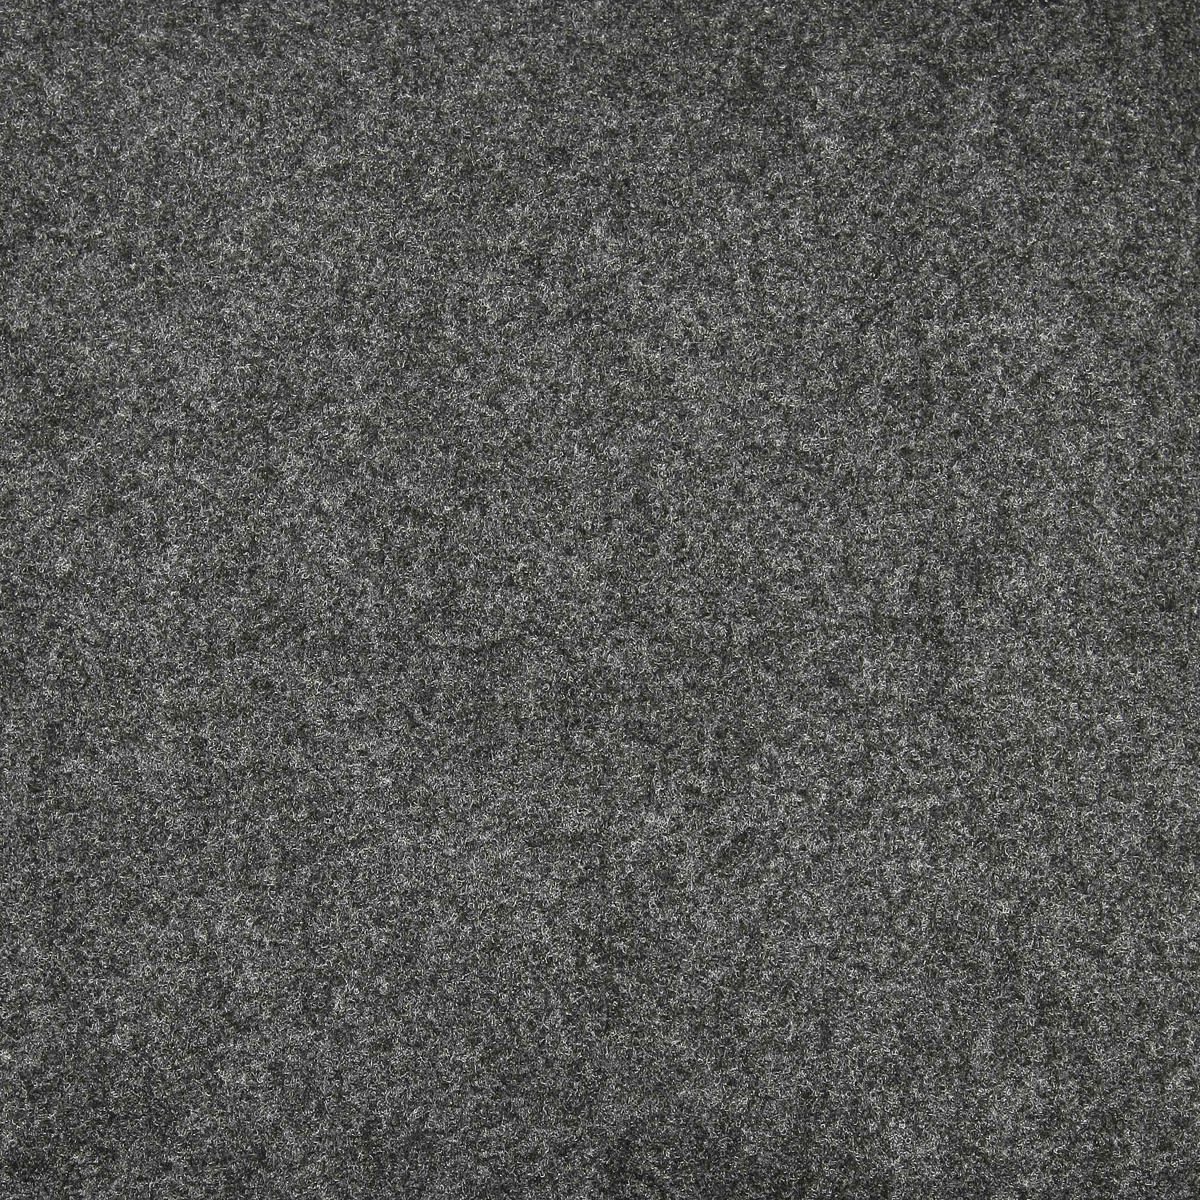 TRUNK LINER CHARCOAL 5 YARDS